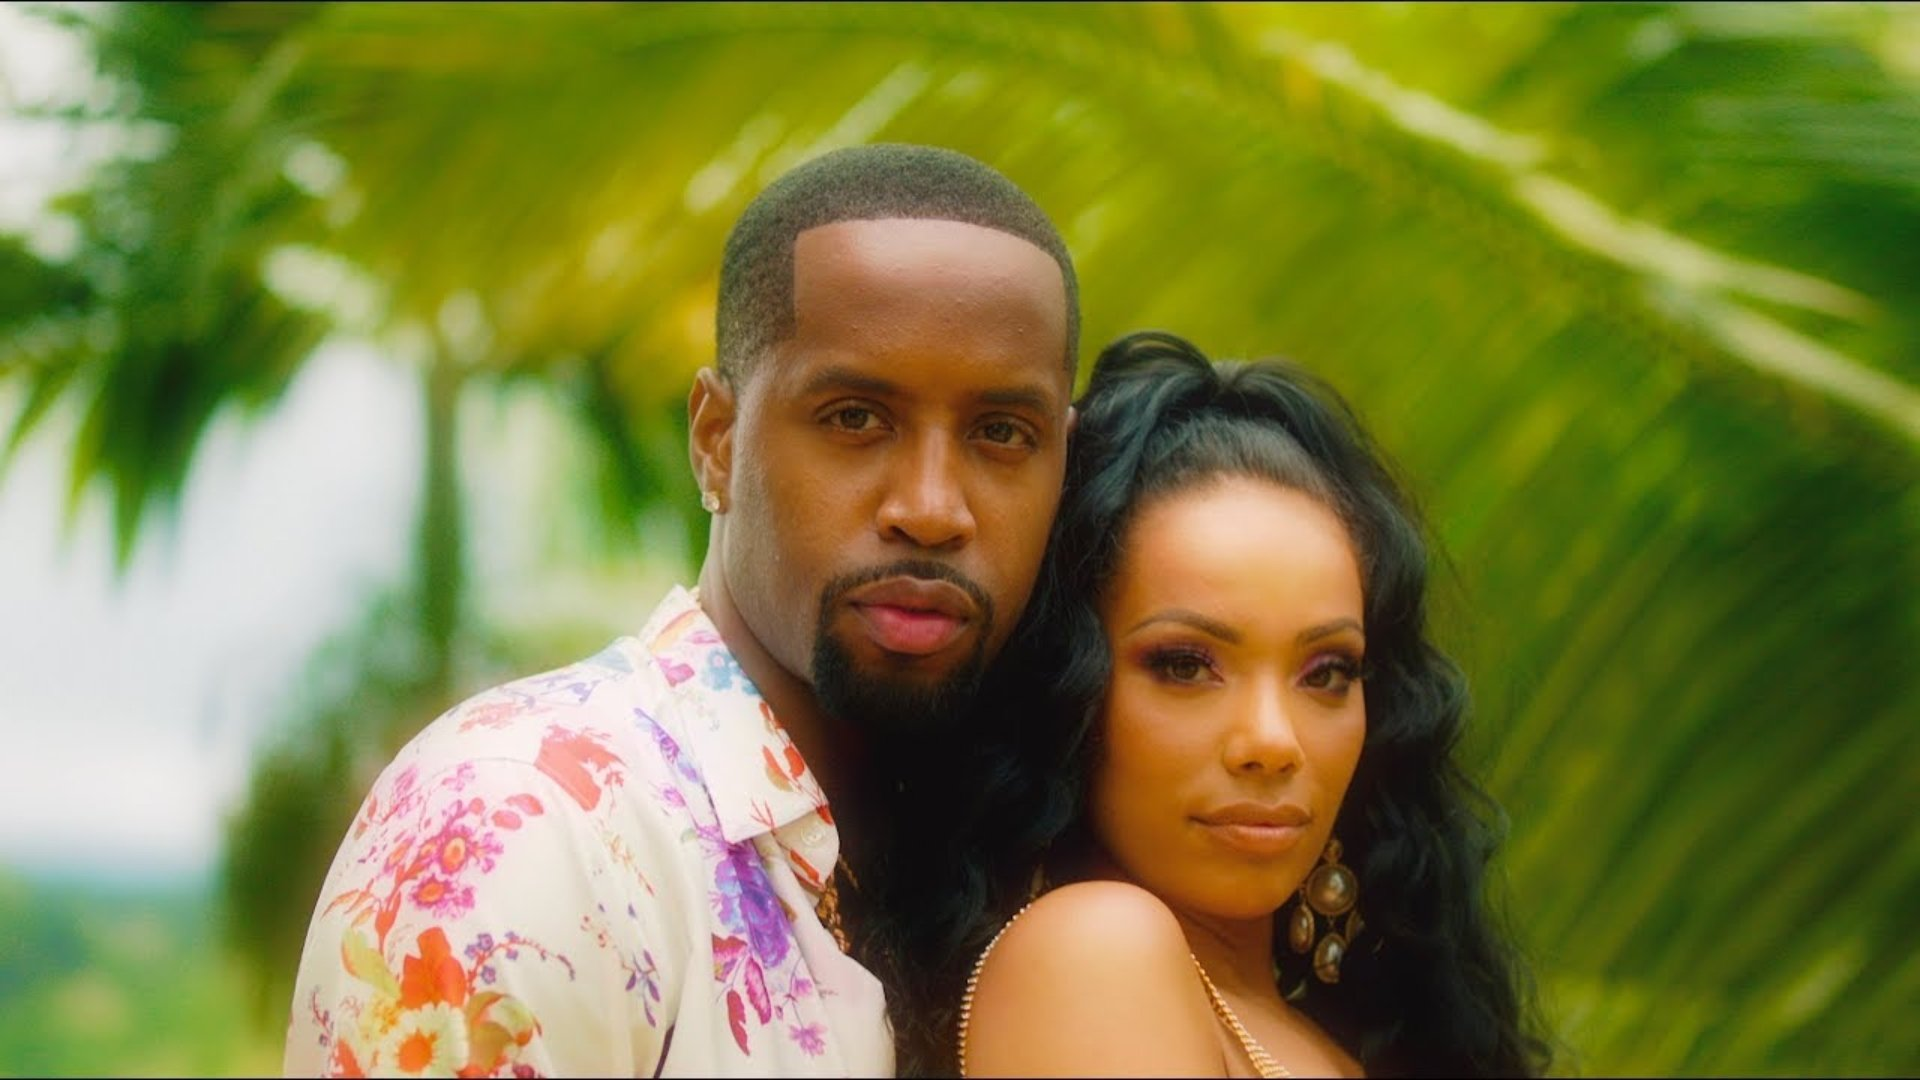 Safaree Shares A Video On His Bike And Worries Fans